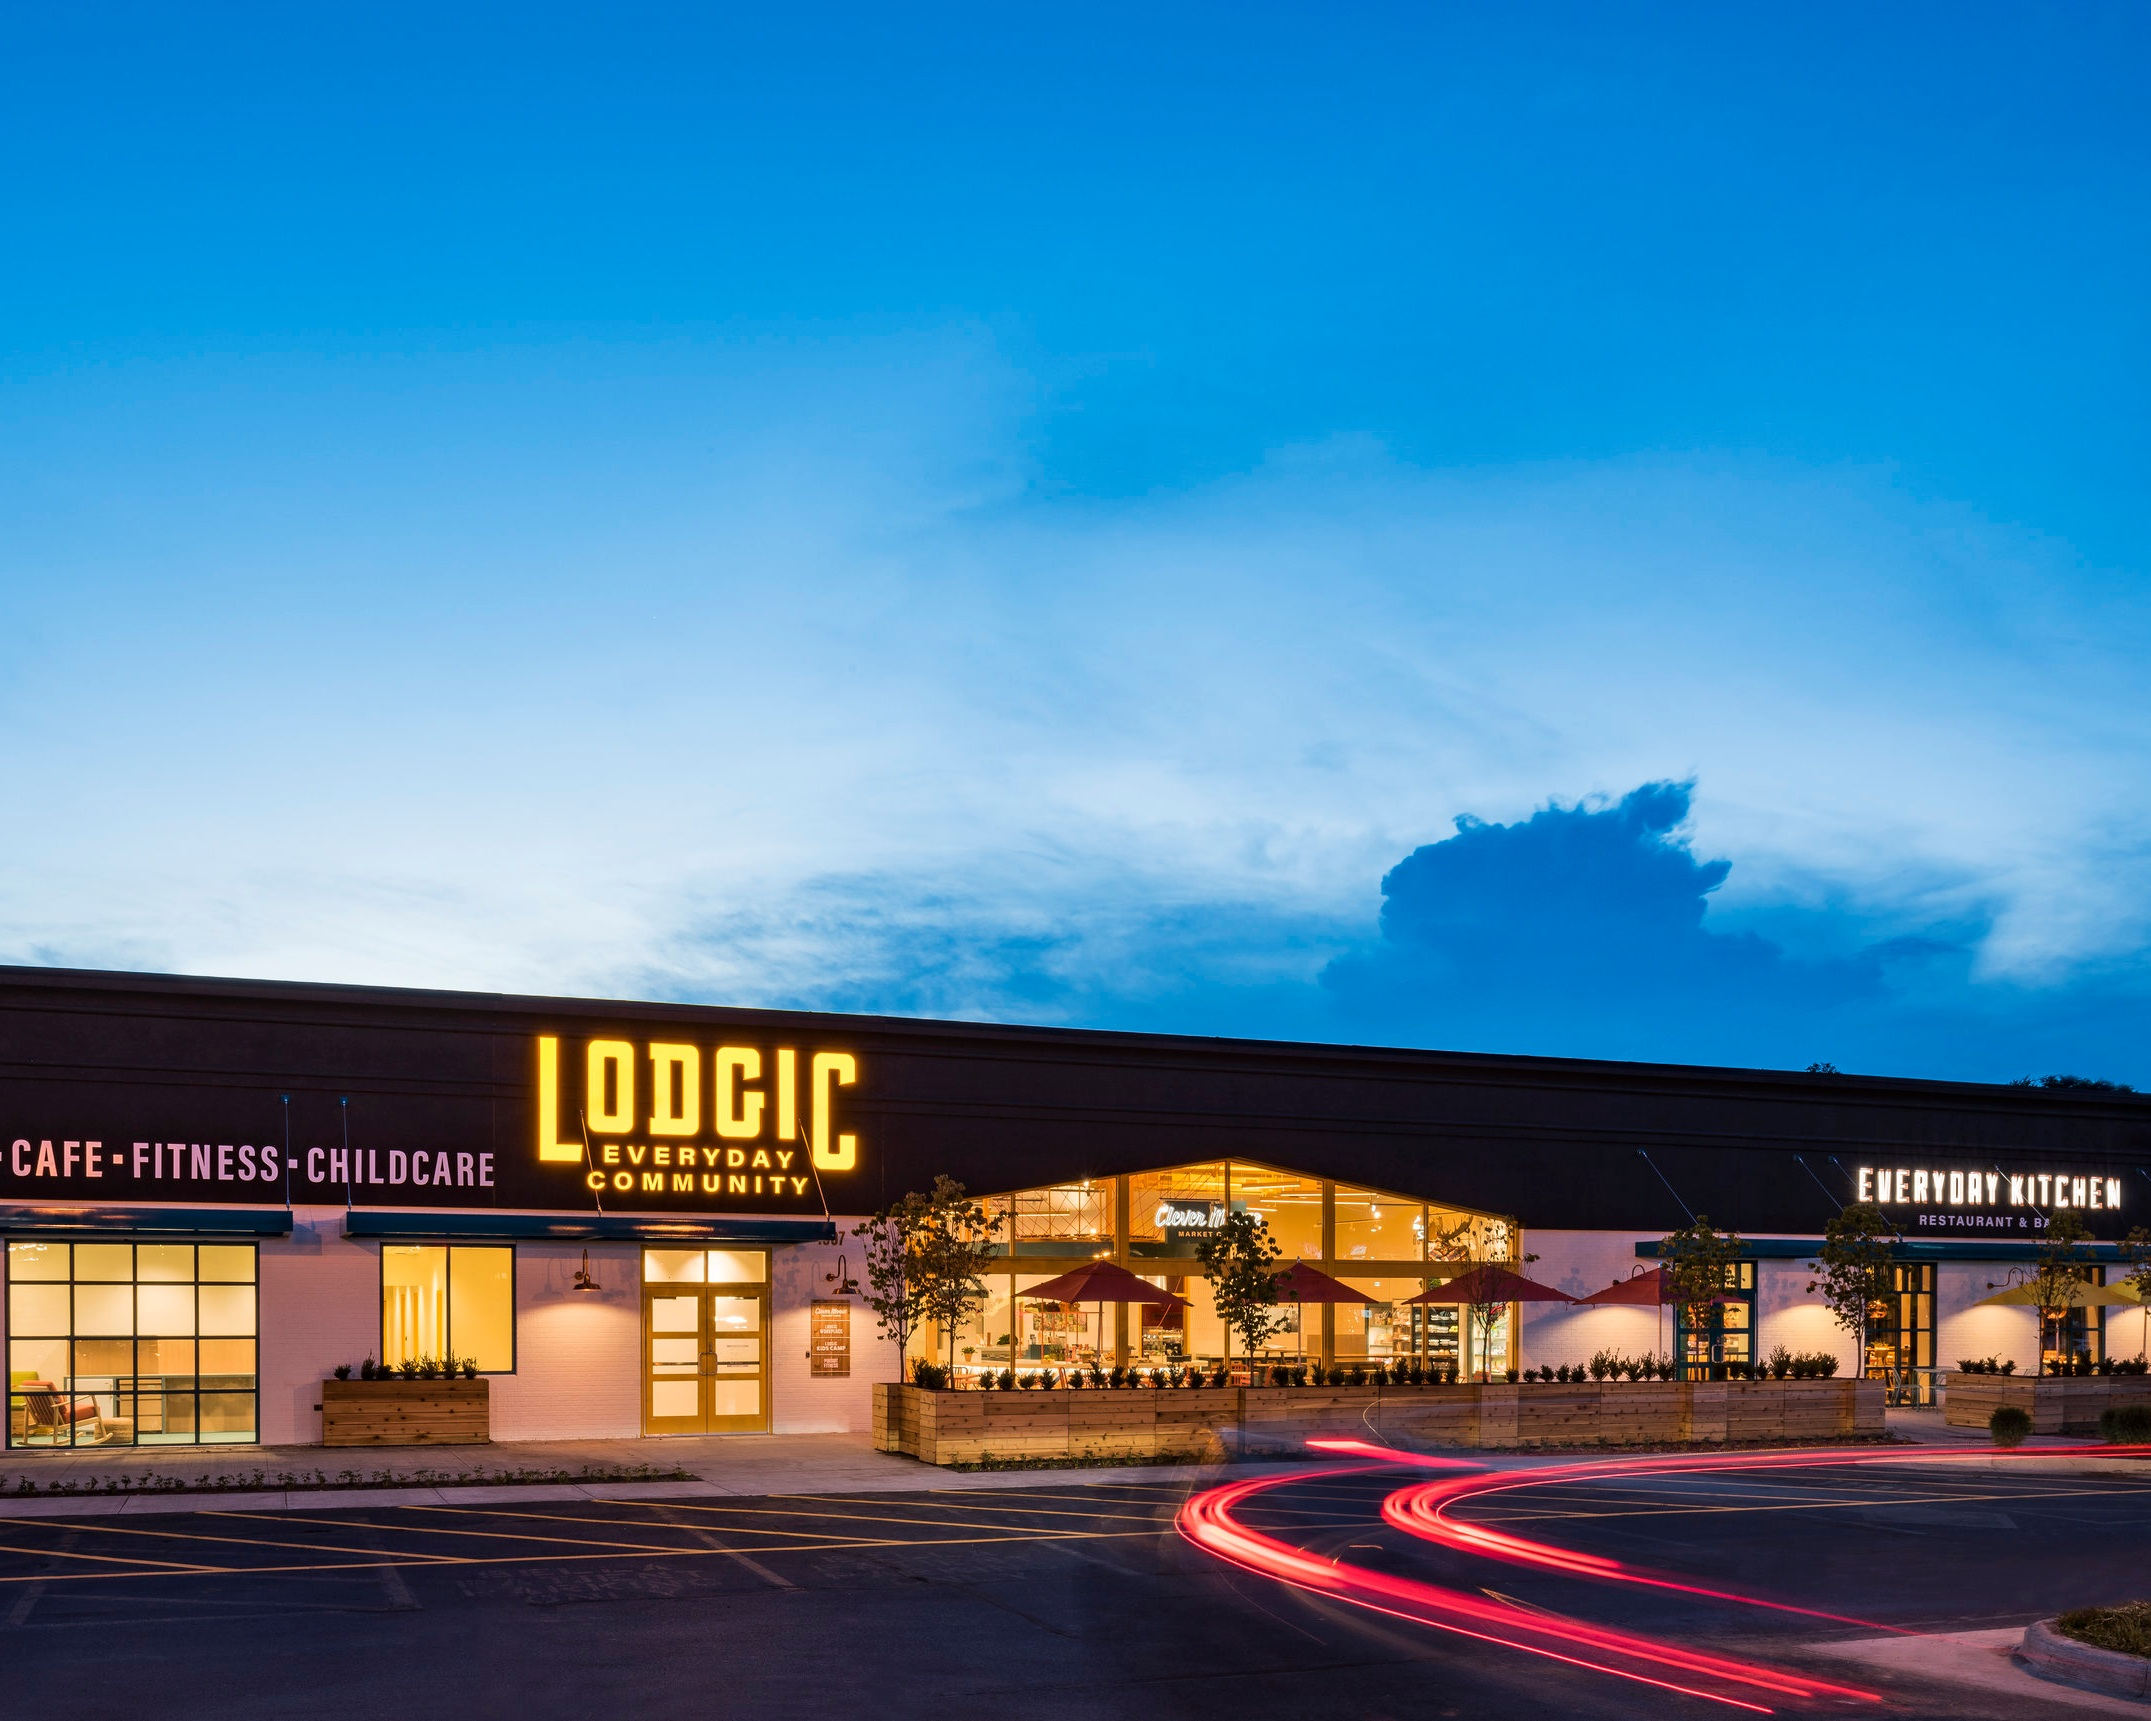 LODGIC EVERYDAY COMMUNITY - CHAMPAIGN, ILLINOIS